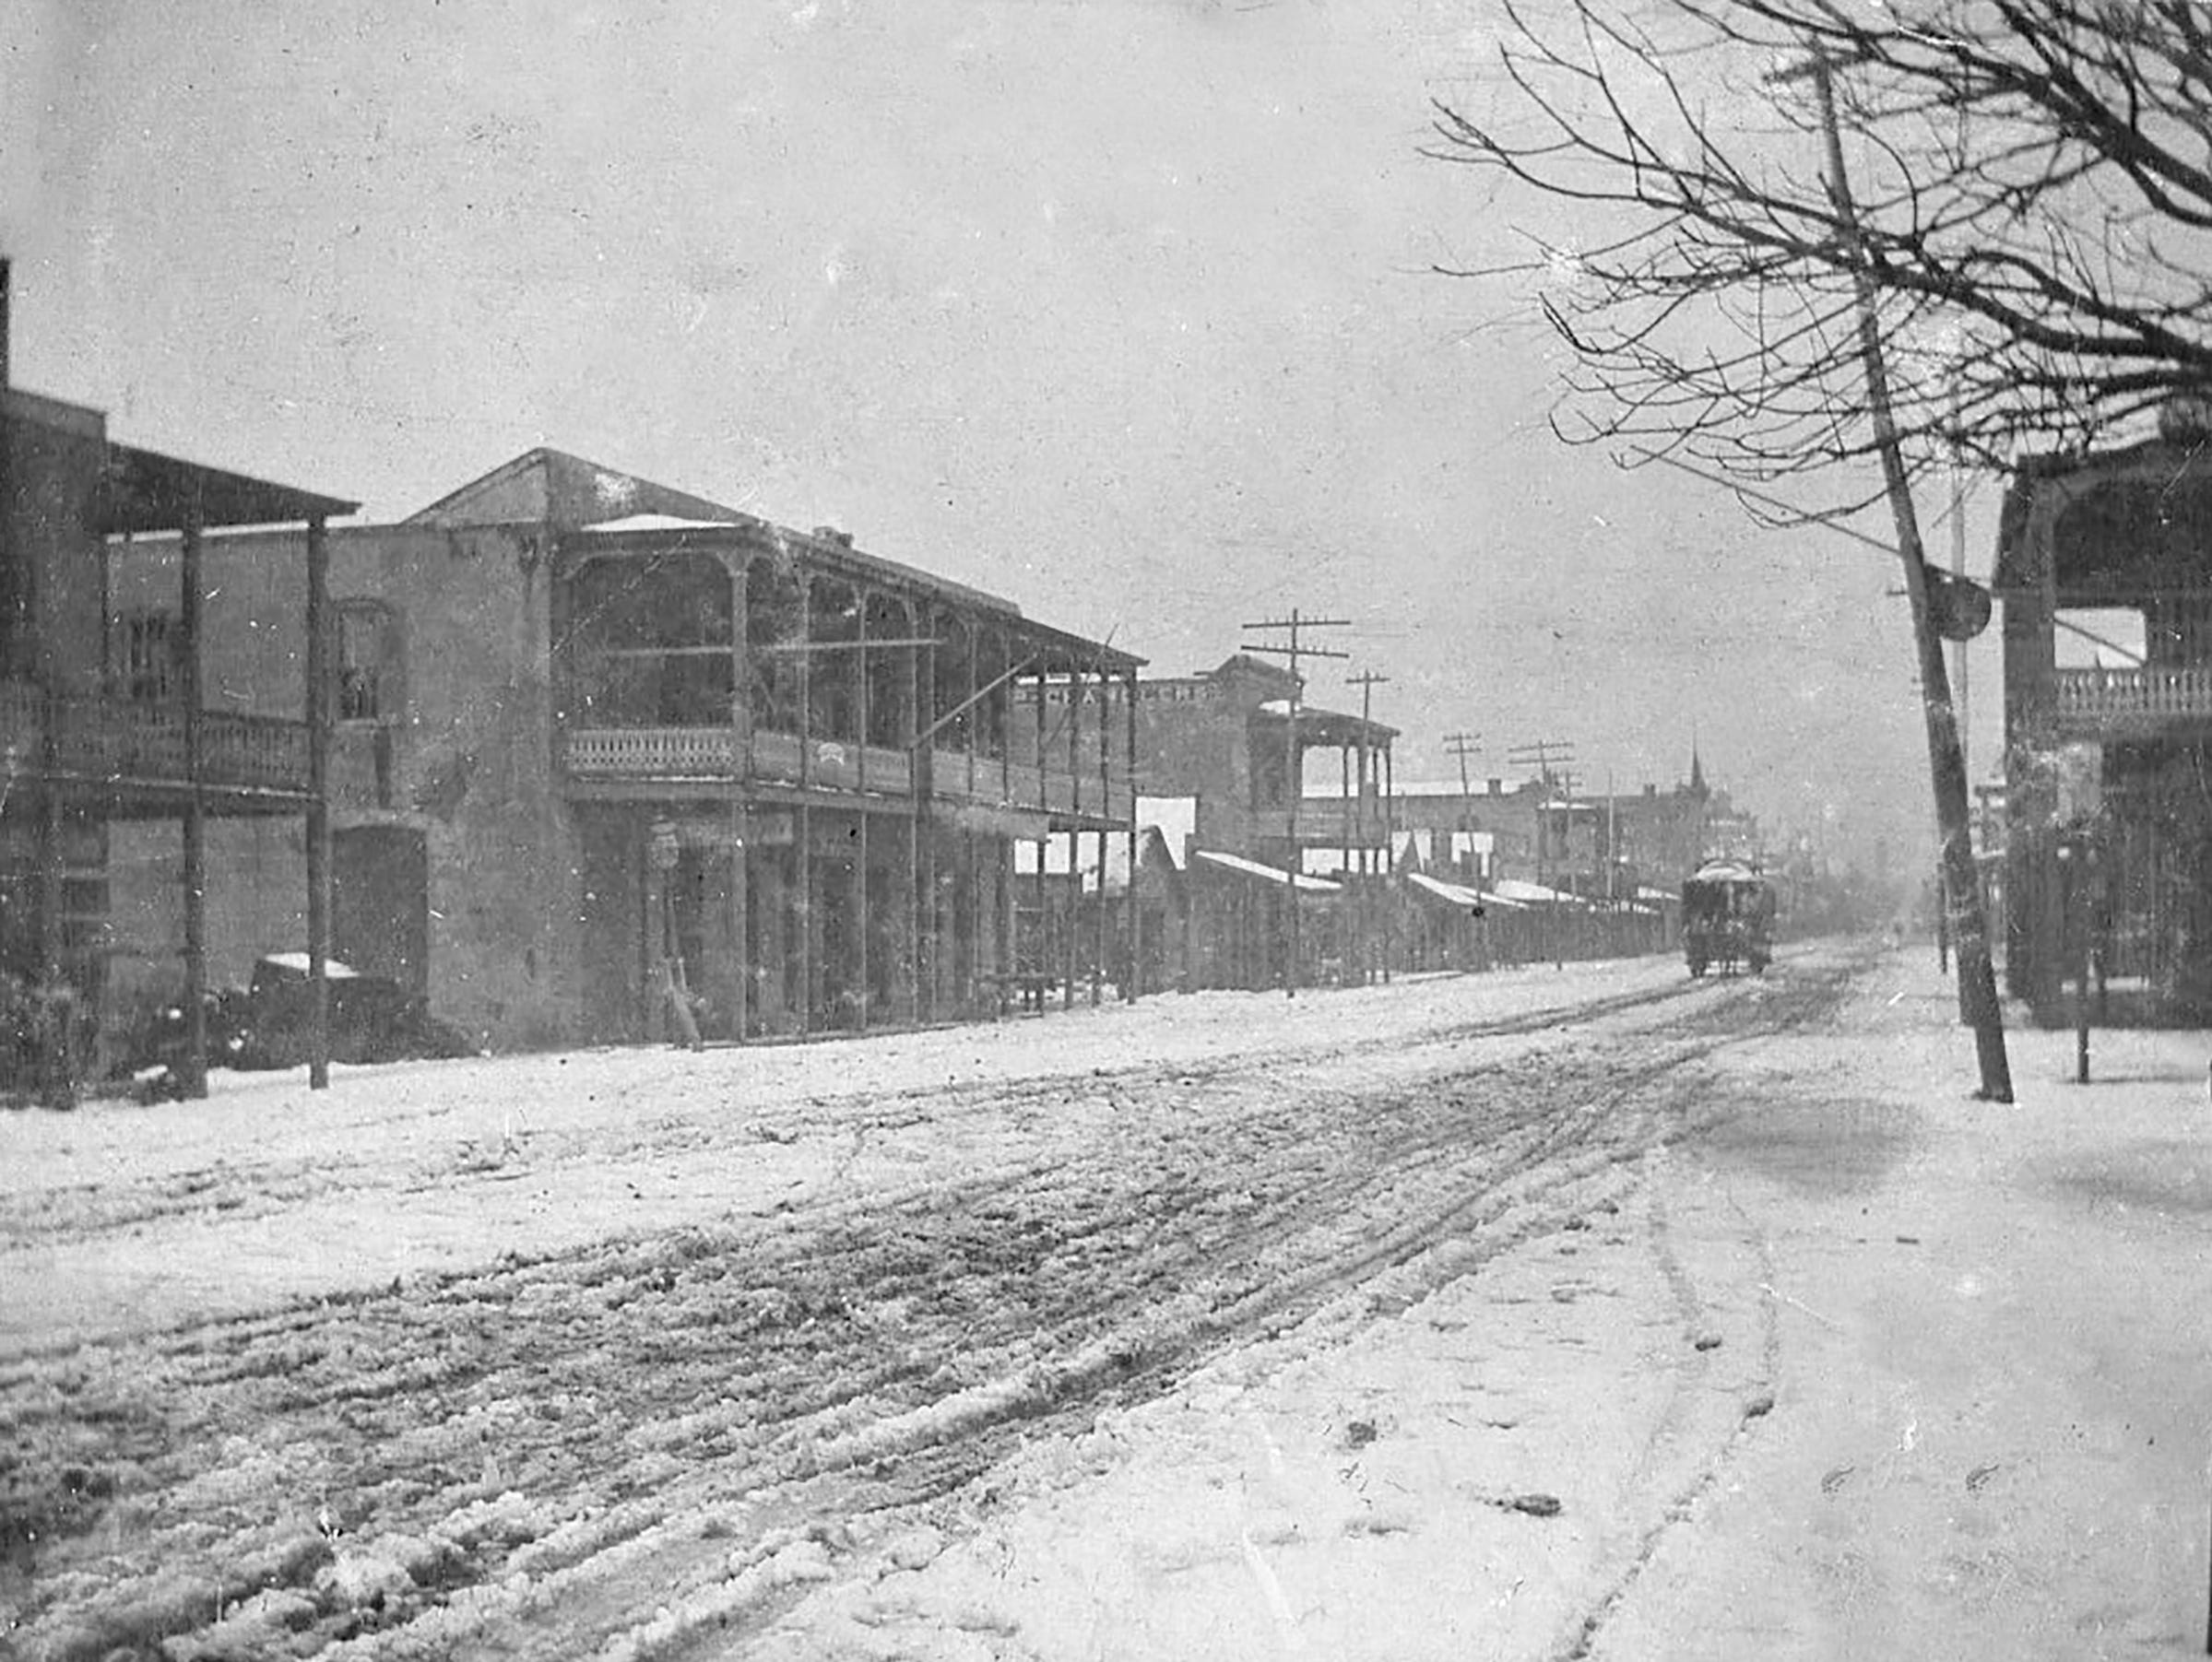 Snow in Pensacola, late 1890s on Palafox Street.